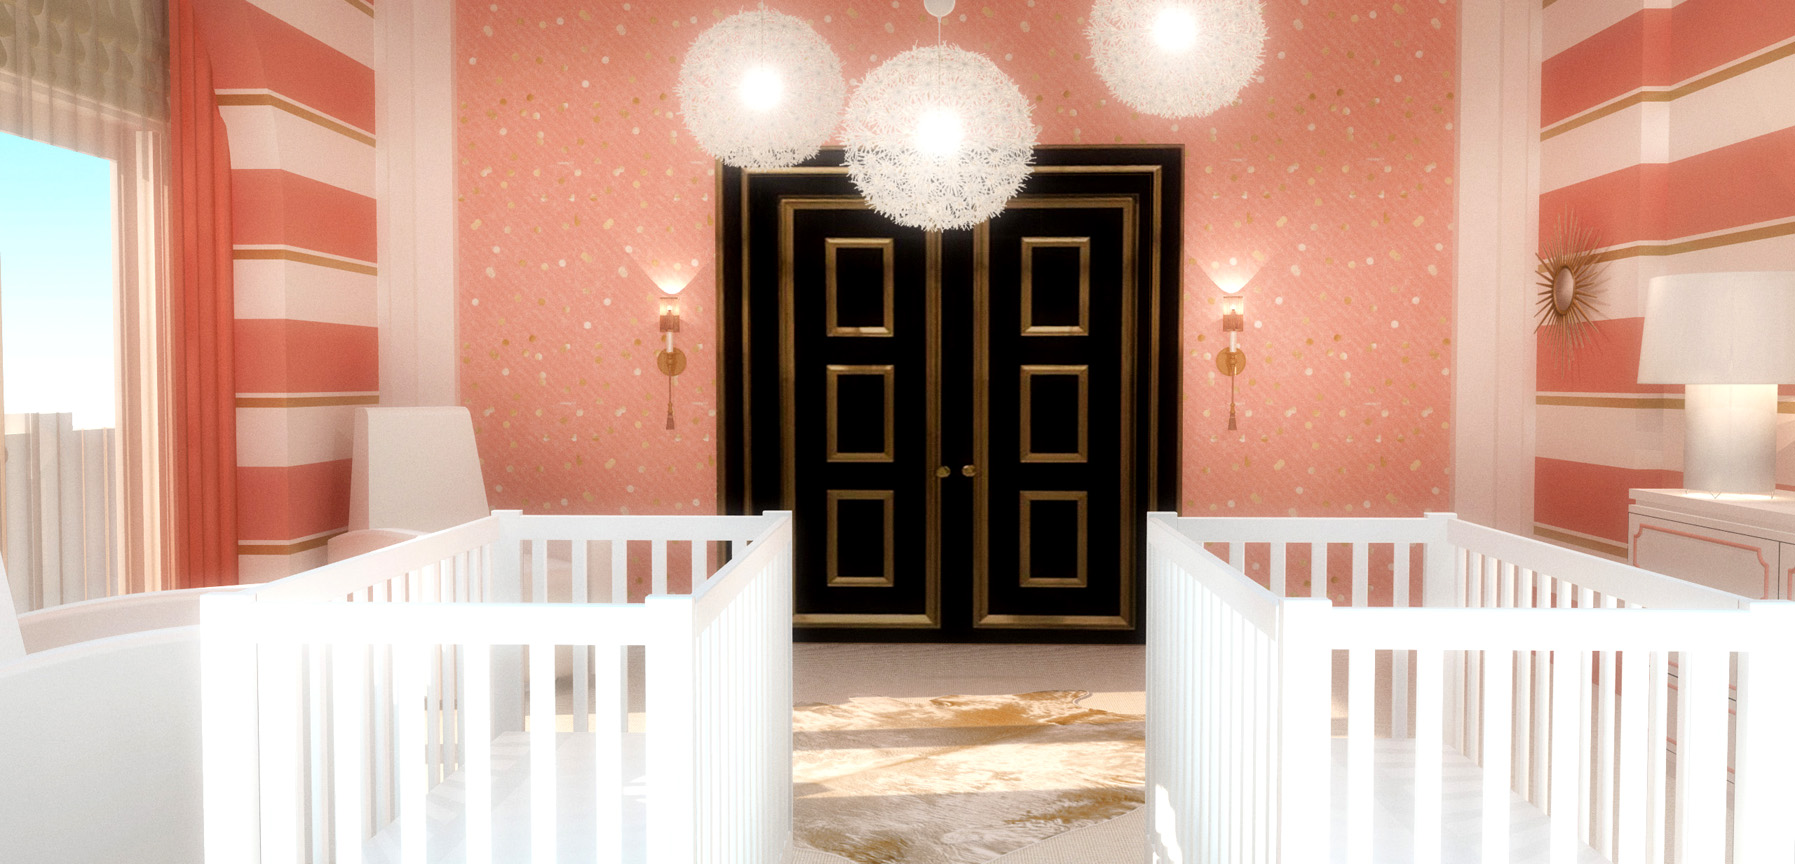 Petras Nursery_RENDERING_View 3 copy.jpg